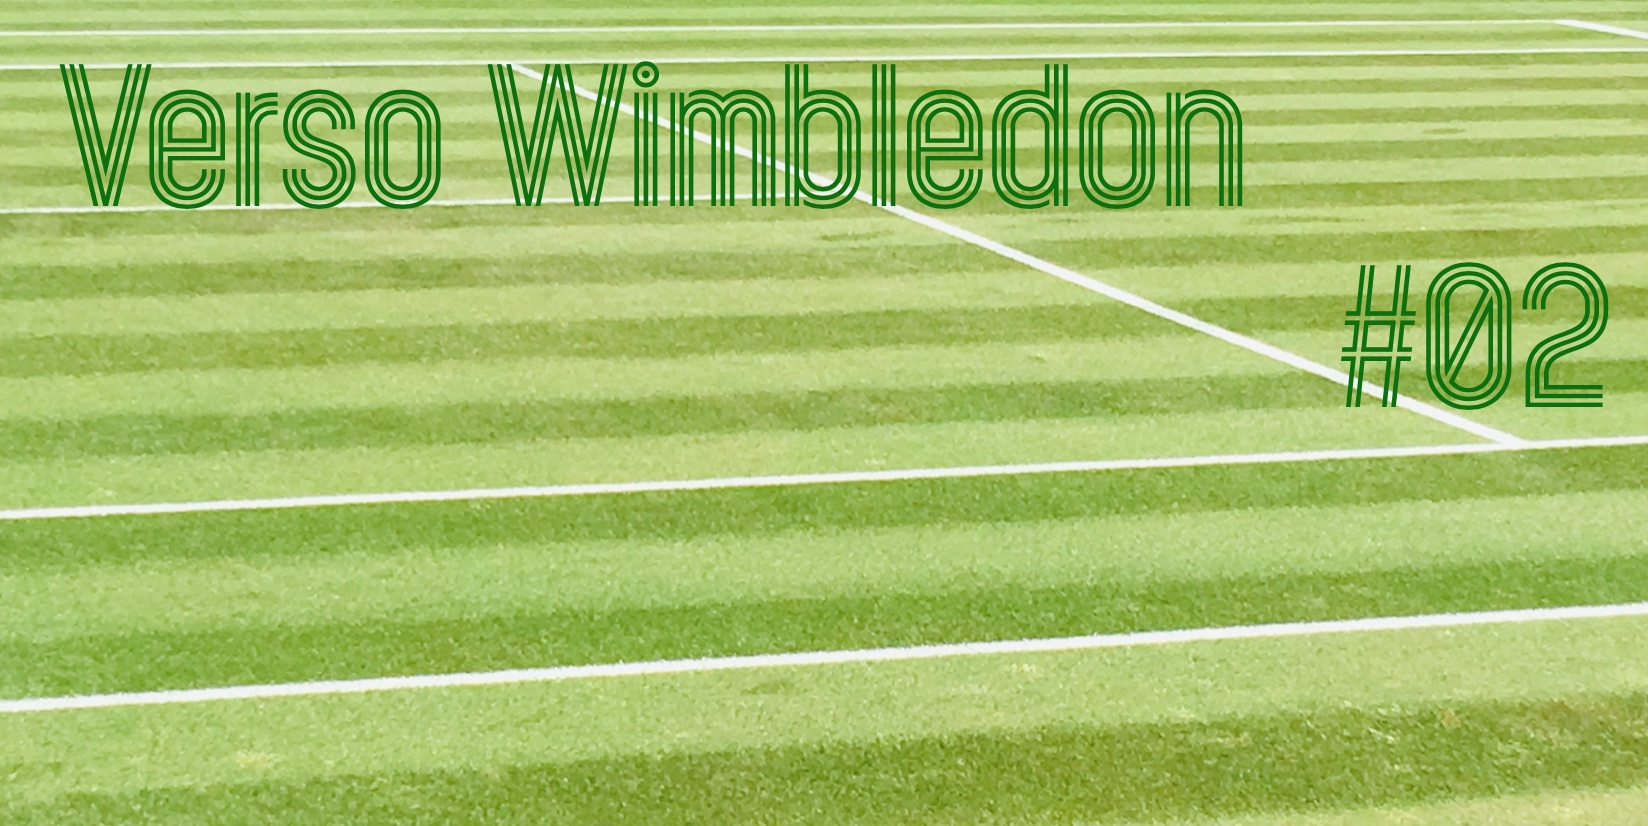 Verso Wimbledon #2 - settesei.it